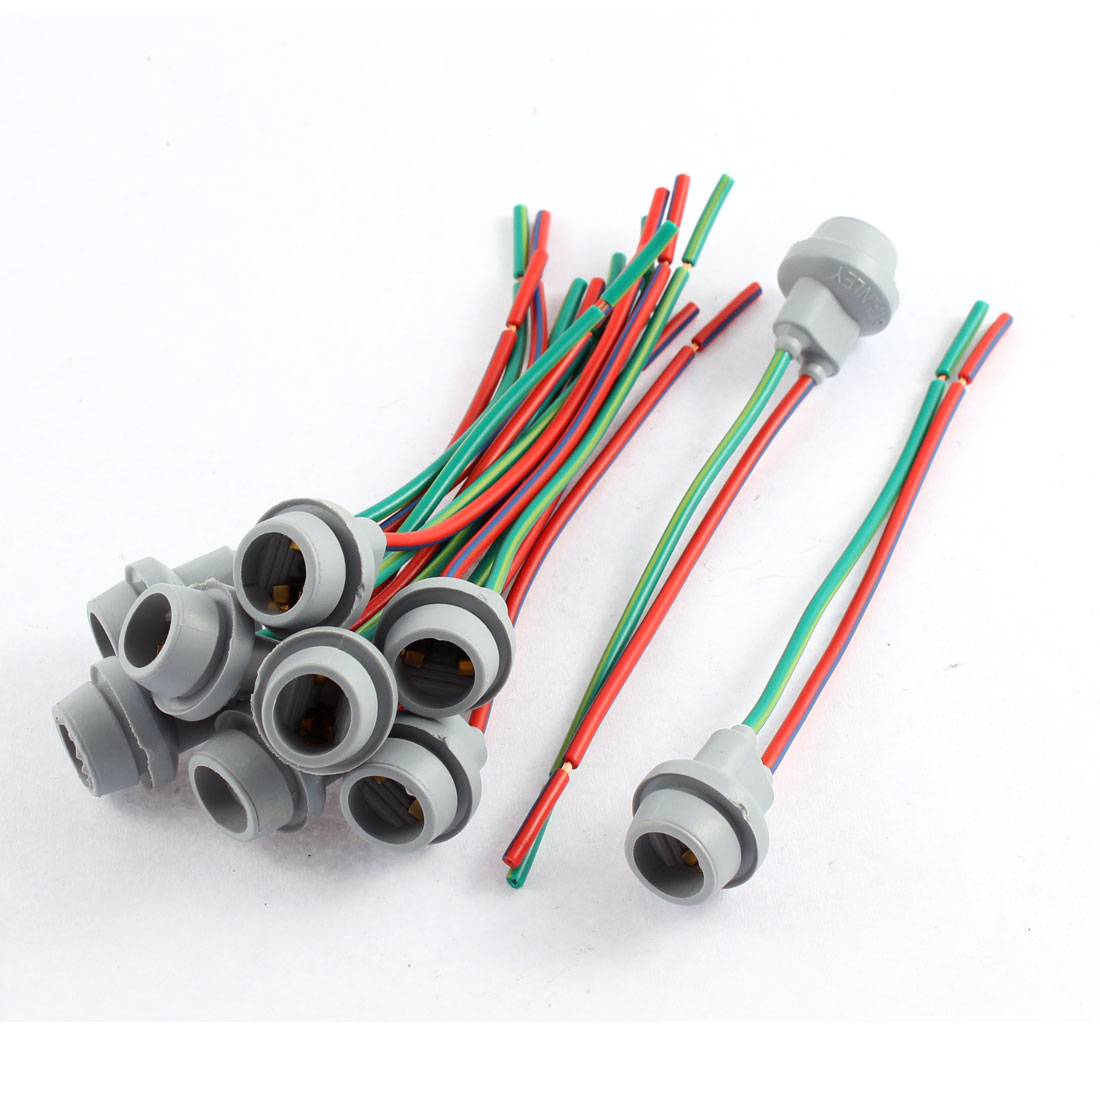 X Autohaux Car W5w <font><b>T10</b></font> 194 168 Light <font><b>Socket</b></font> Lamp Holder Wire Harness Connector 10 Pcs image